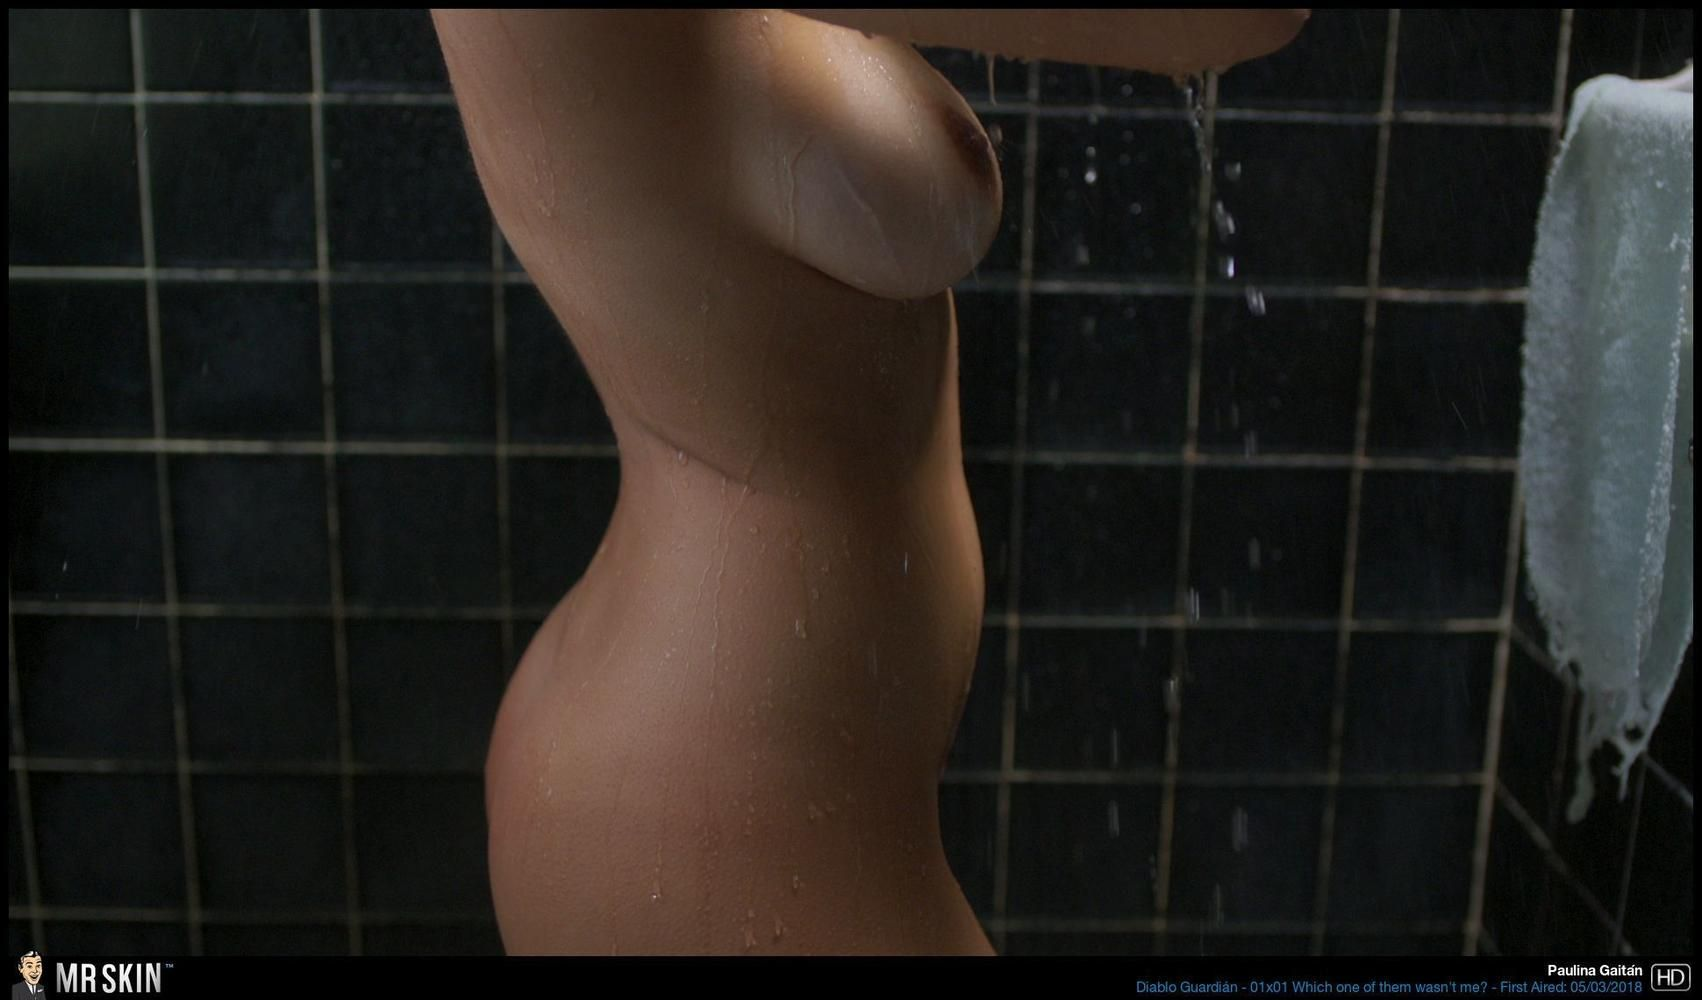 bigger boob surgery without